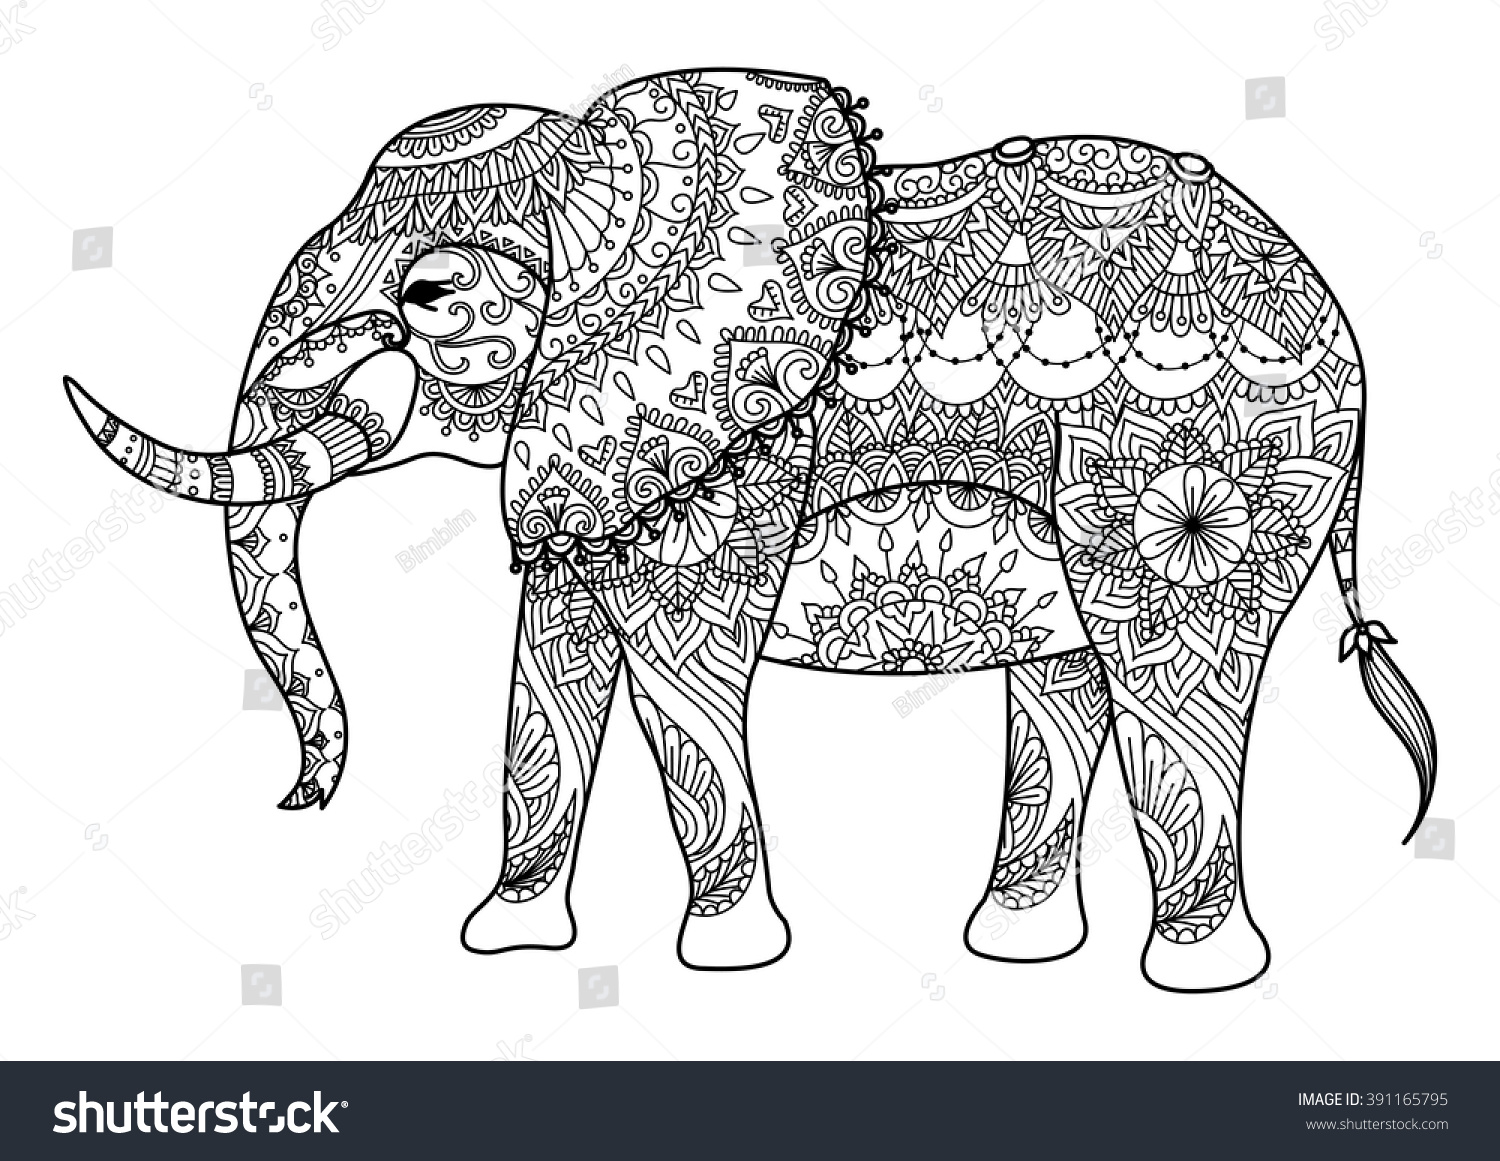 Line Art Card Design : Mandala elephant line art design card stock vector